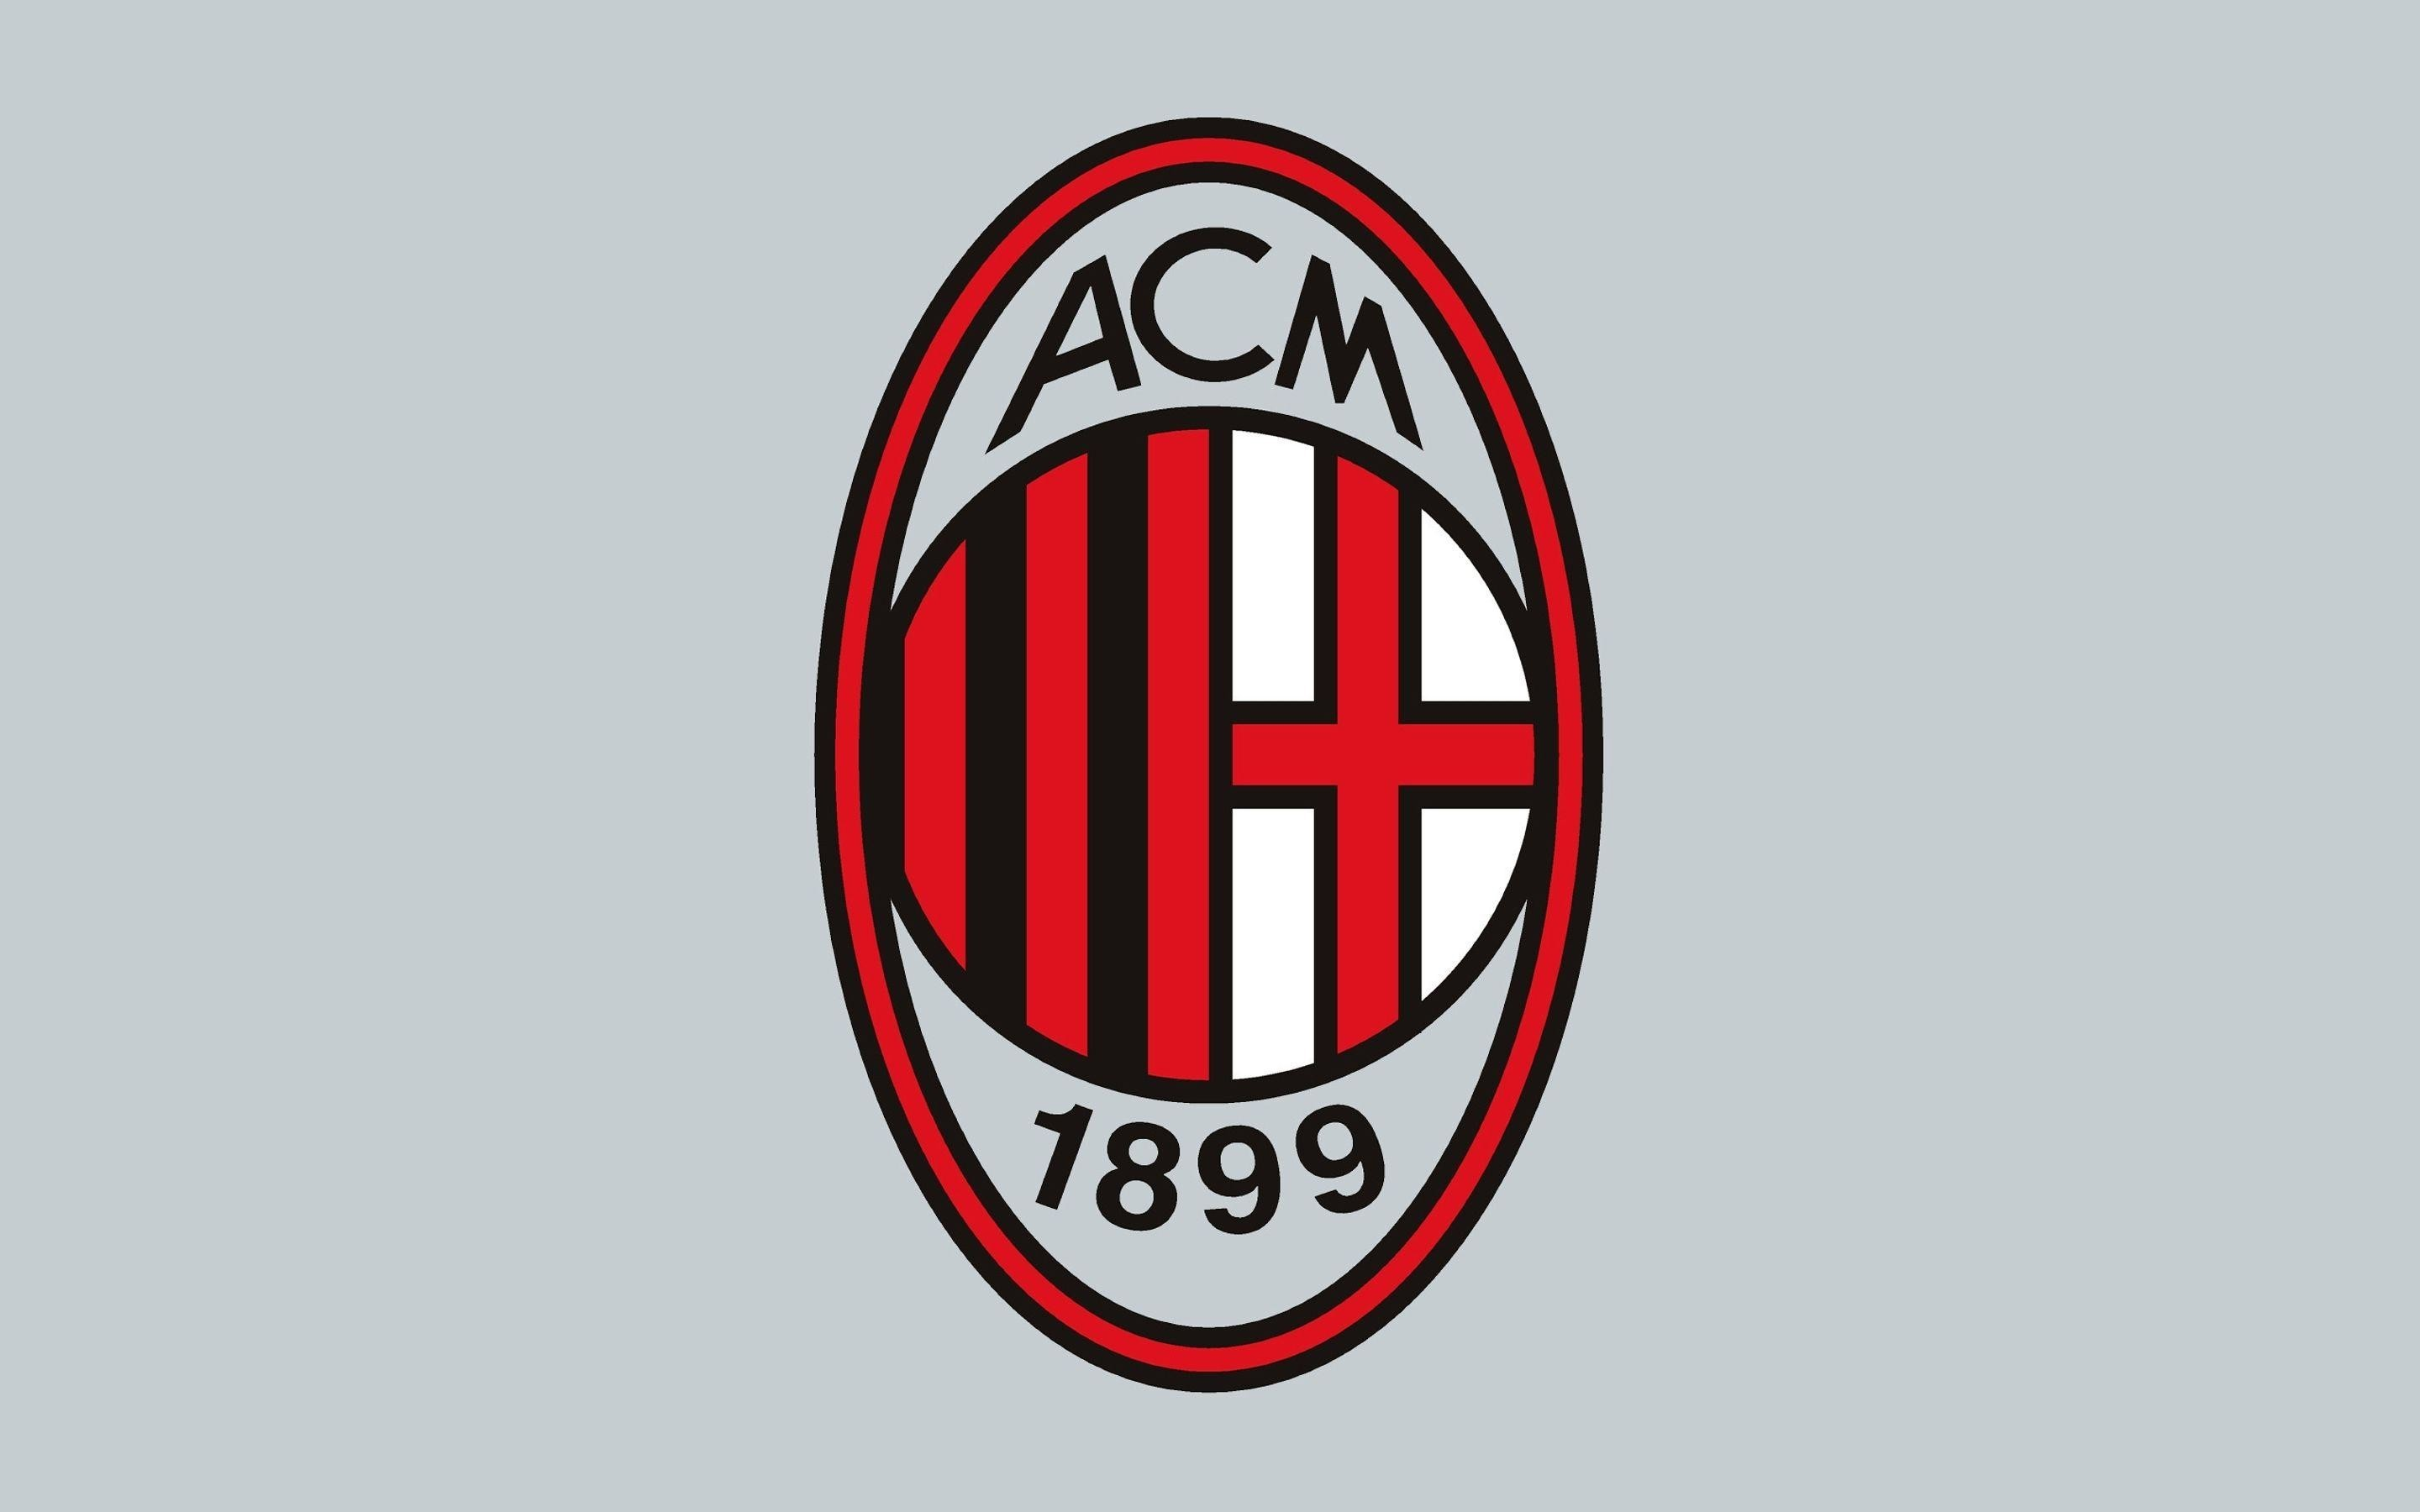 1920x1080 AC Milan Sports Soccer Clubs Italy Wallpapers HD Desktop And Mobile Backgrounds